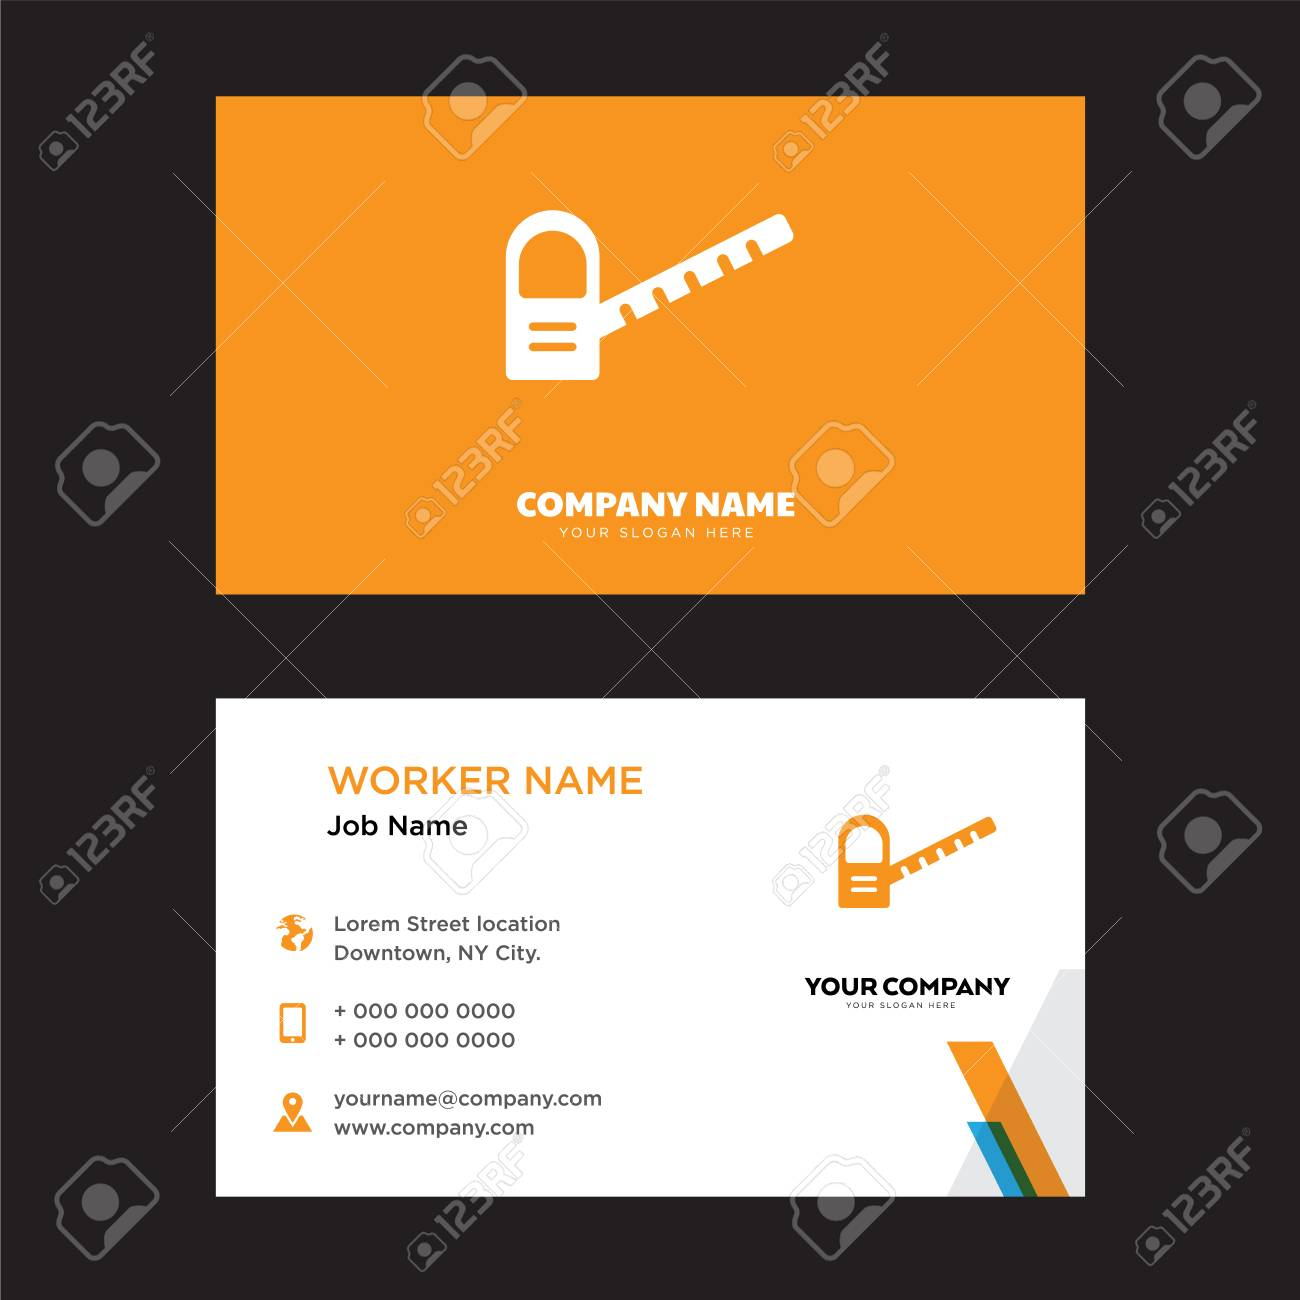 Toll road business card design template visiting for your company toll road business card design template visiting for your company modern horizontal identity card wajeb Gallery